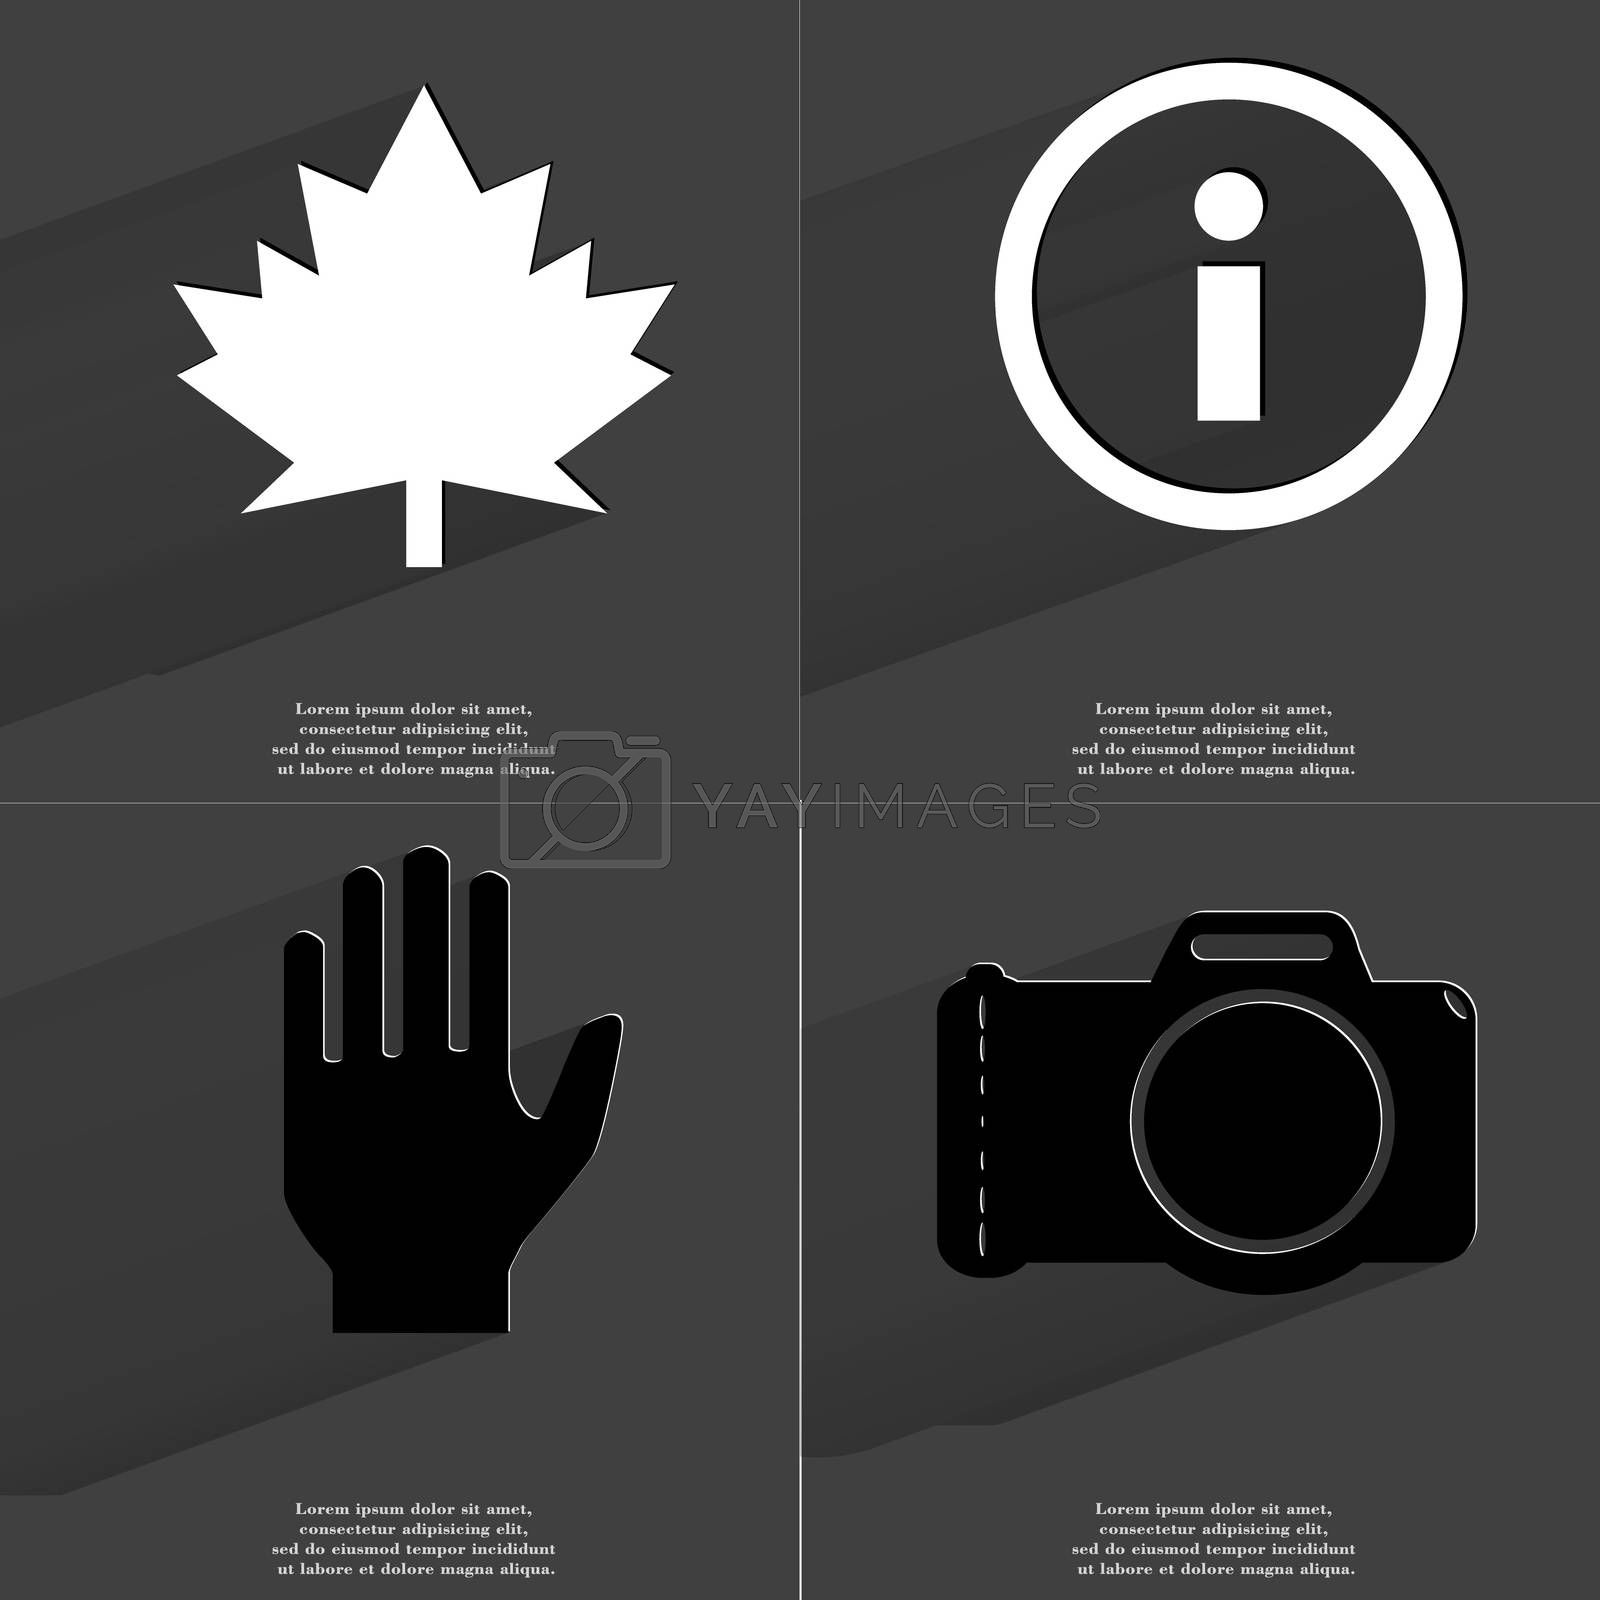 Royalty free image of Maple leaf, Information sign, Hand, Camera. Symbols with long shadow. Flat design by serhii_lohvyniuk